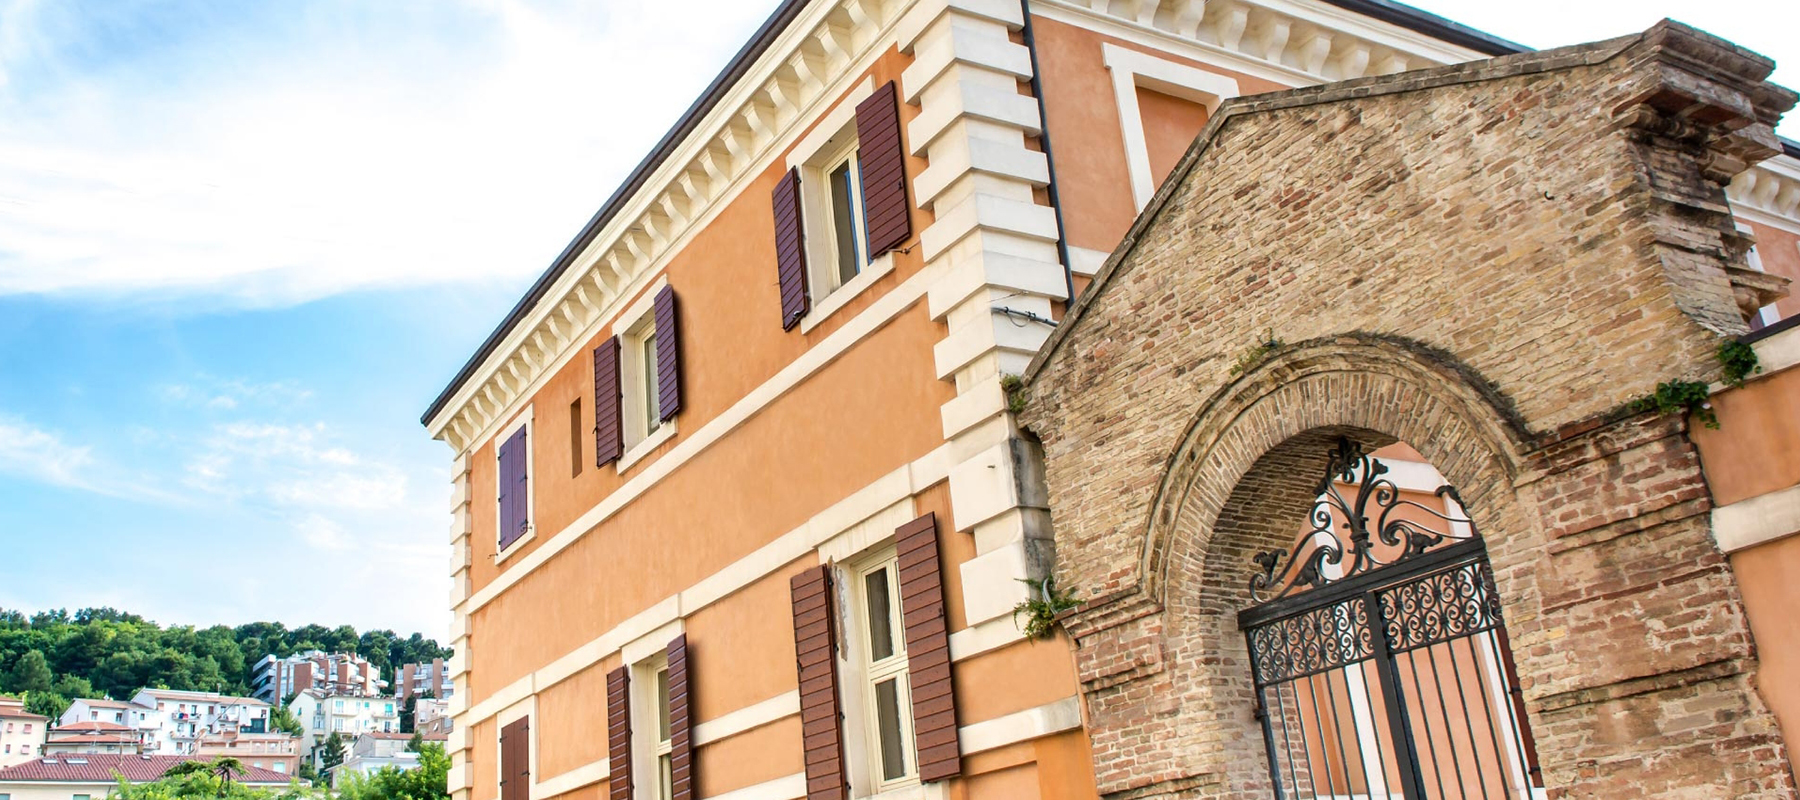 3 Stars Hotel in the heart of Ancona